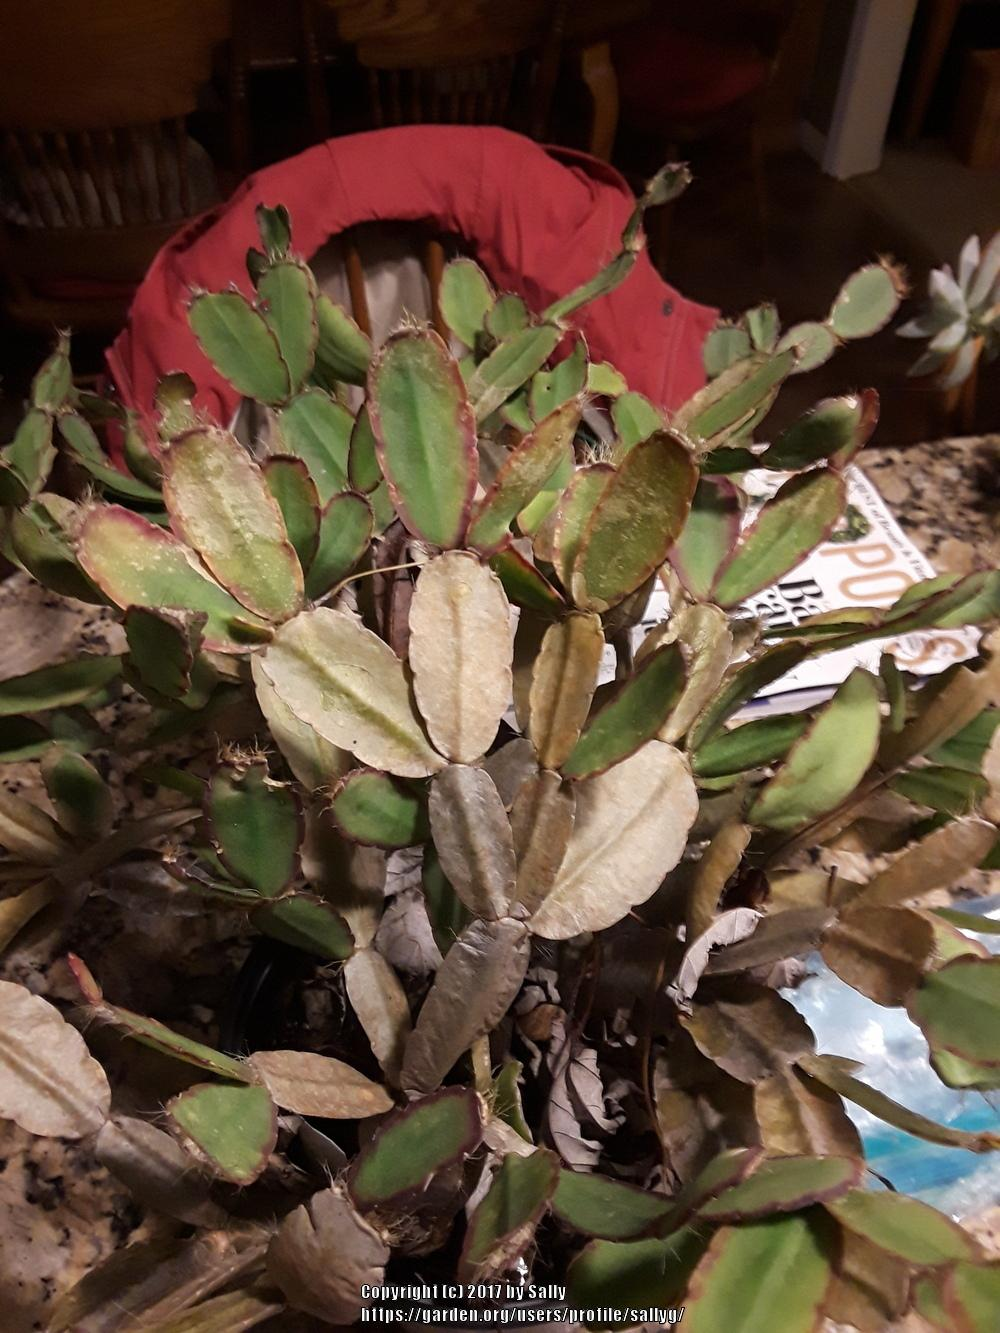 Houseplants forum: Hatiora, Easter cactus, brown stems and thin ...